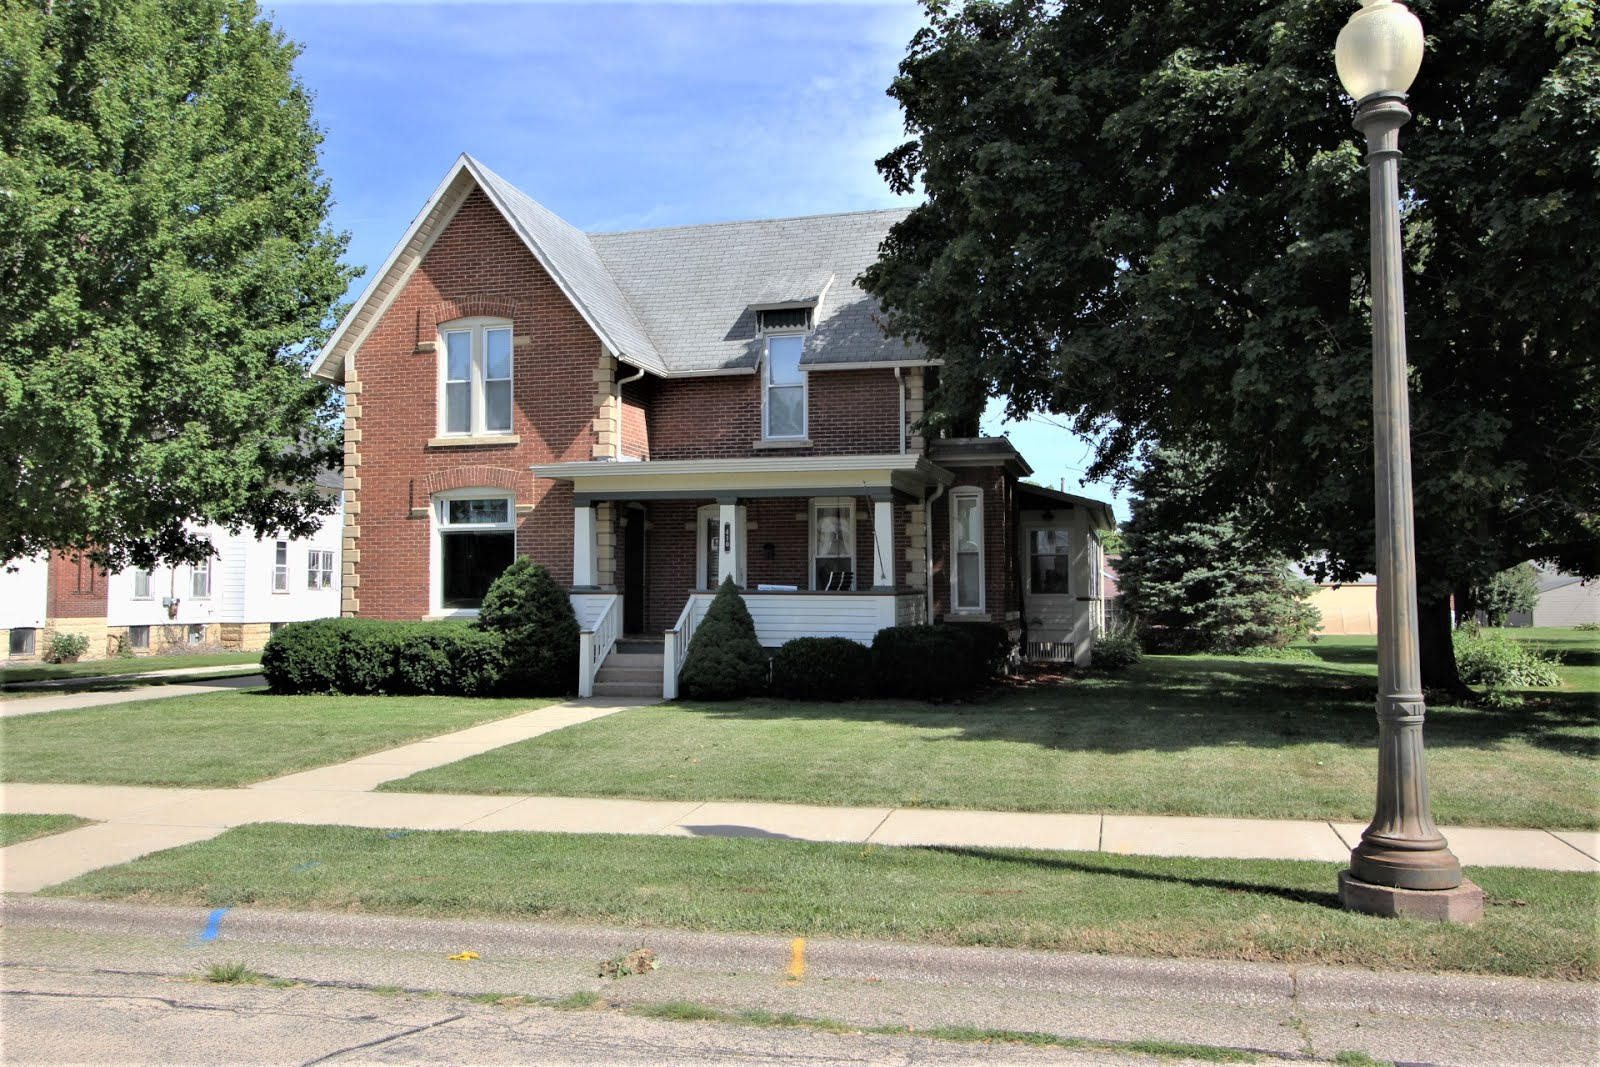 410 West Pleasant St., Maquoketa, IA $205,000